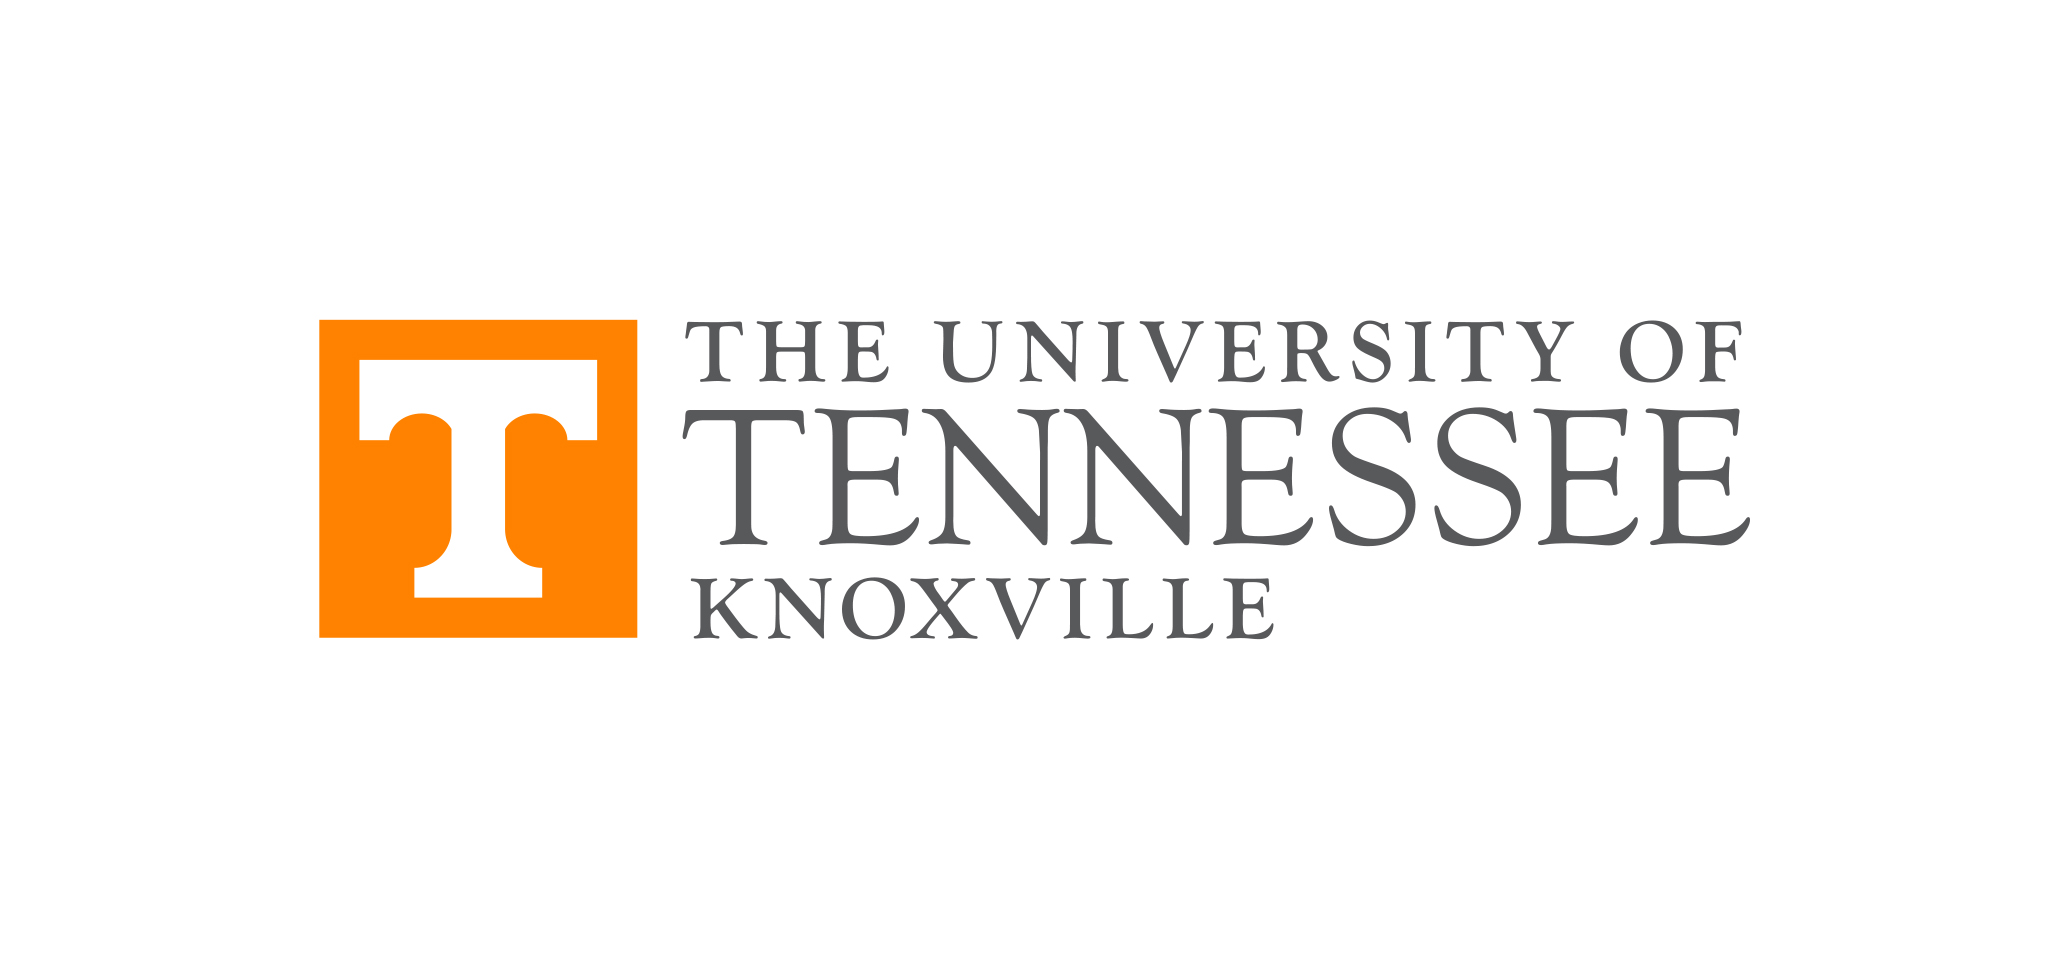 University of Tennessee - Knoxville